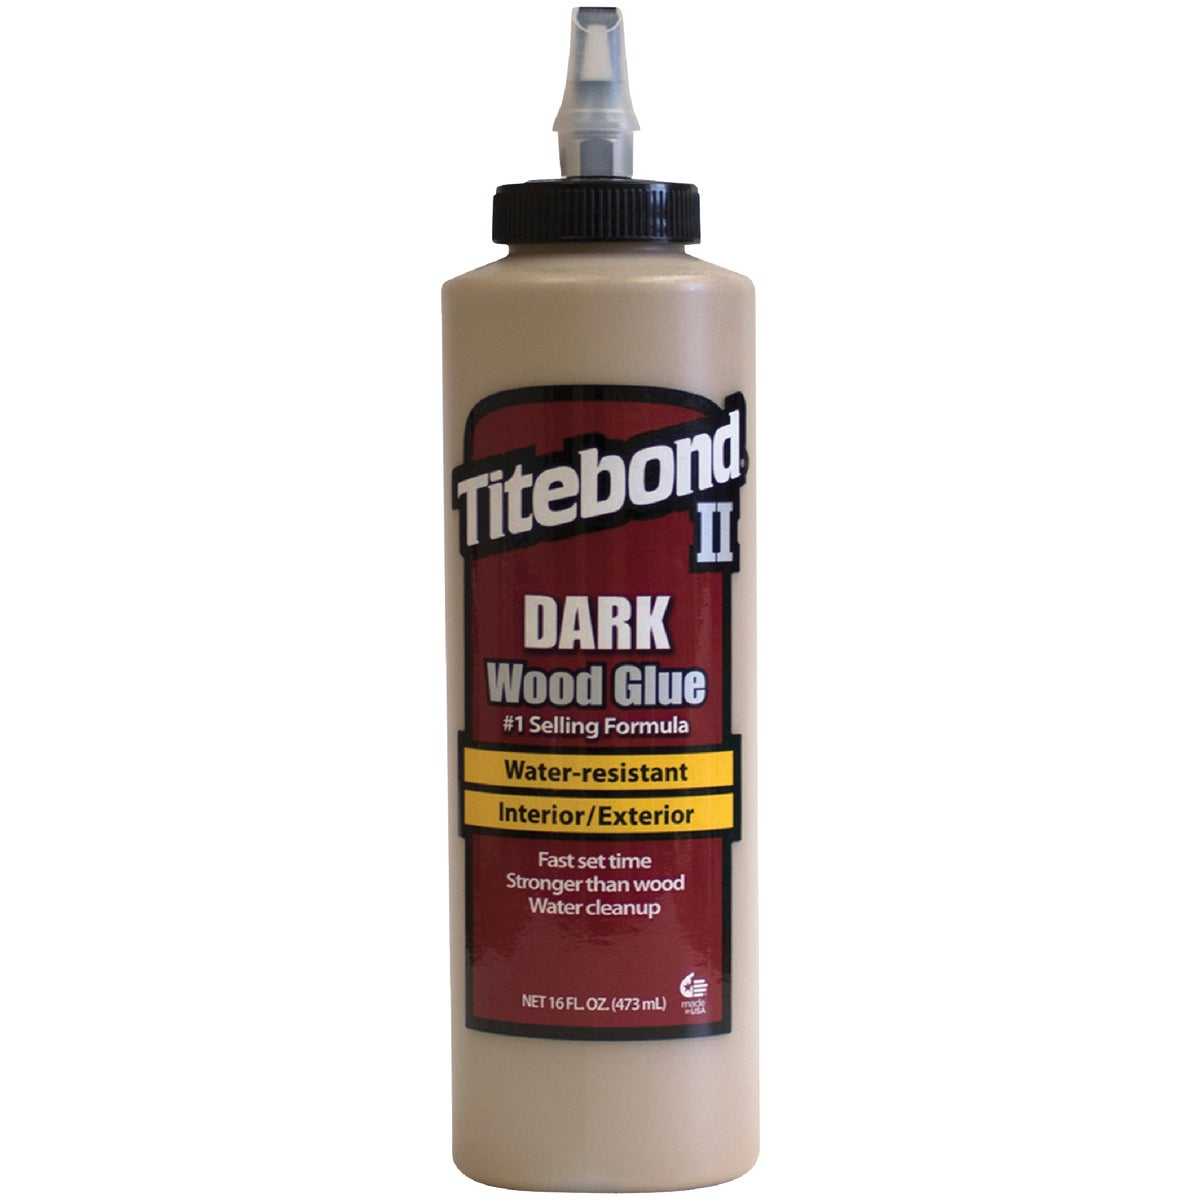 16OZ DARK WOOD GLUE